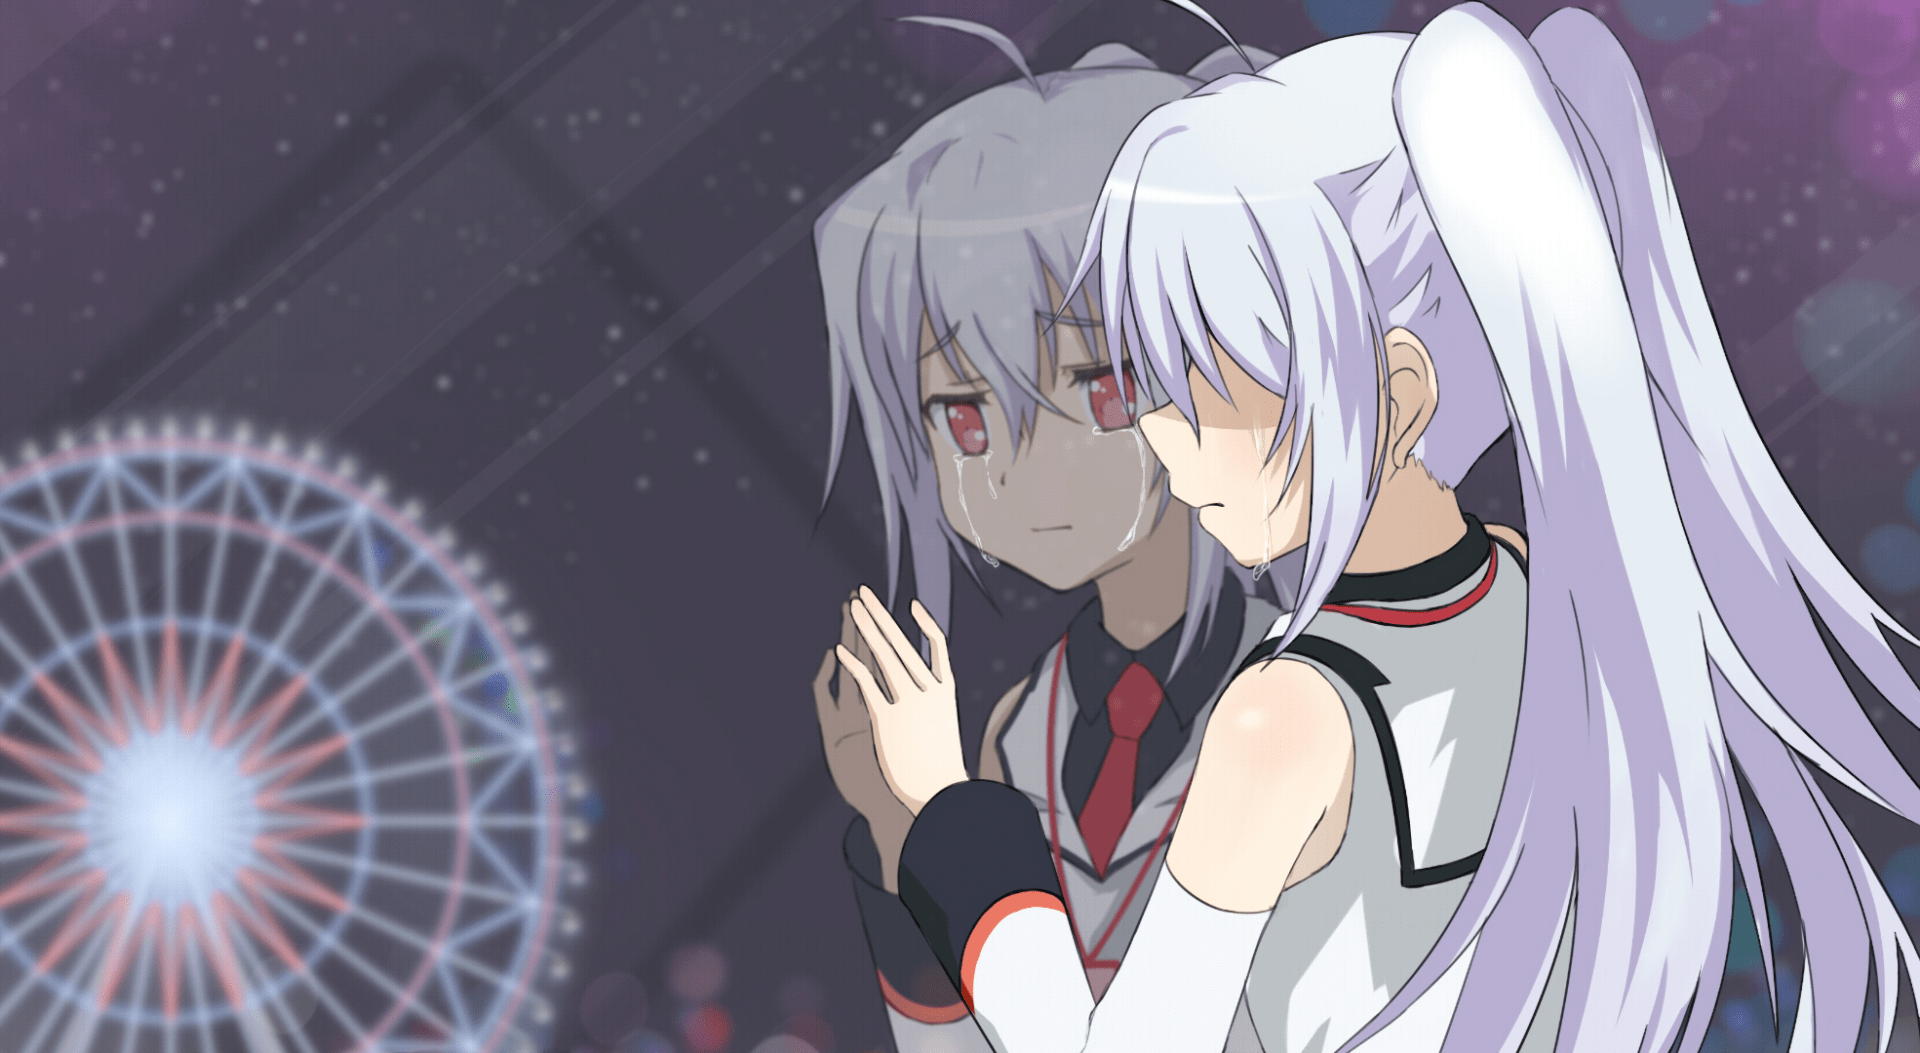 Wallpaper Quotes Iphone 6 Plus Plastic Memories Full Hd Wallpaper And Background Image